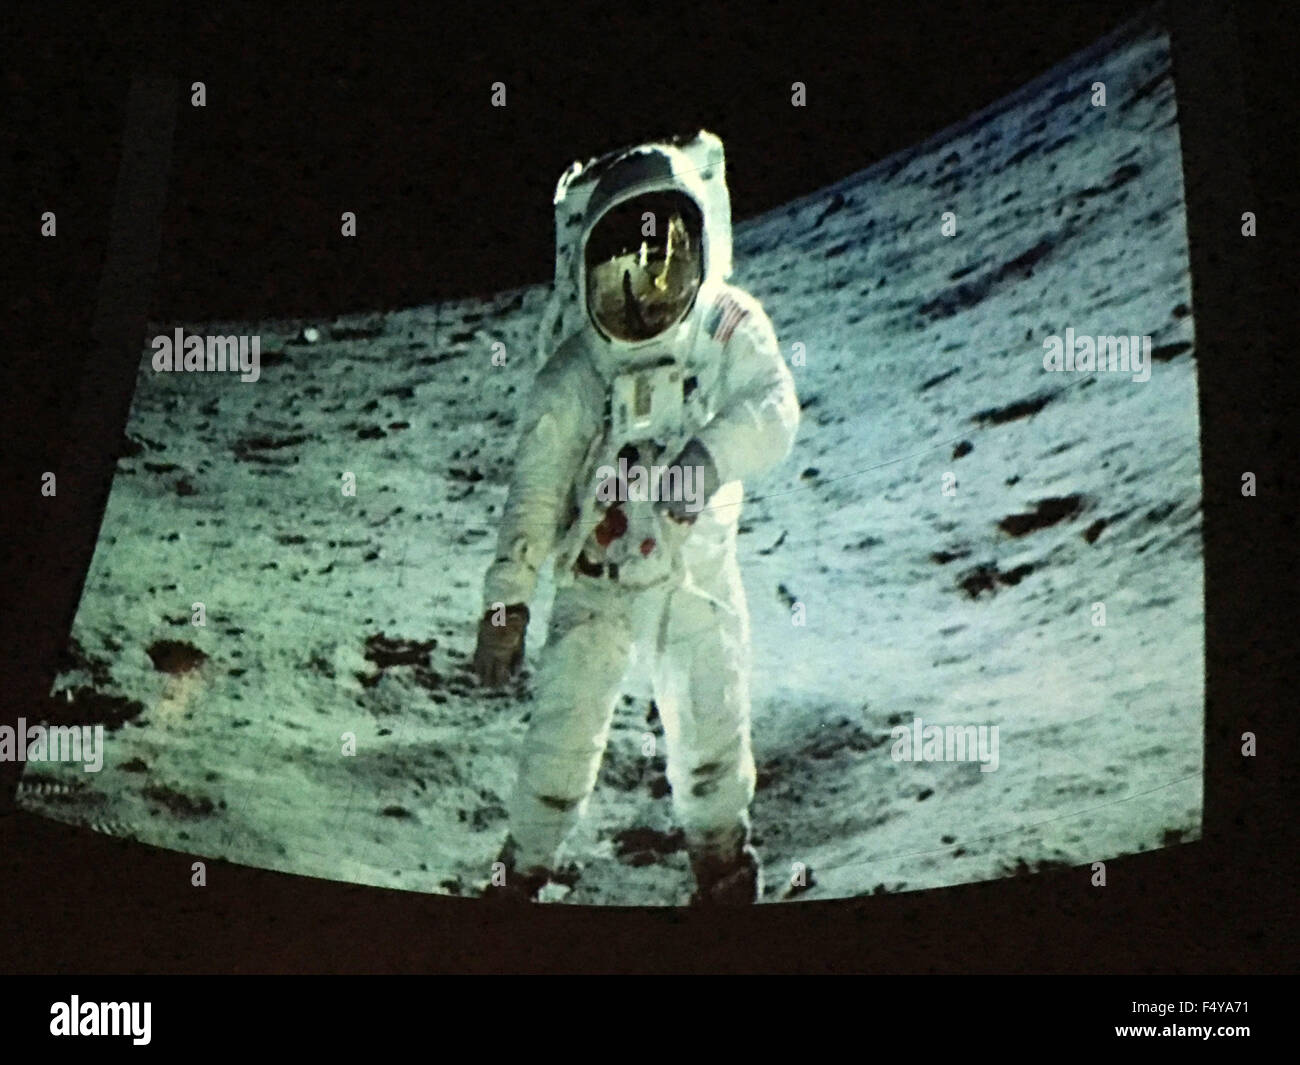 Garden City, New York, USA. 23rd Oct, 2015. Photo of astronaut Edwin BUZZ ALDRIN, in spacesuit walking on lunar - Stock Image